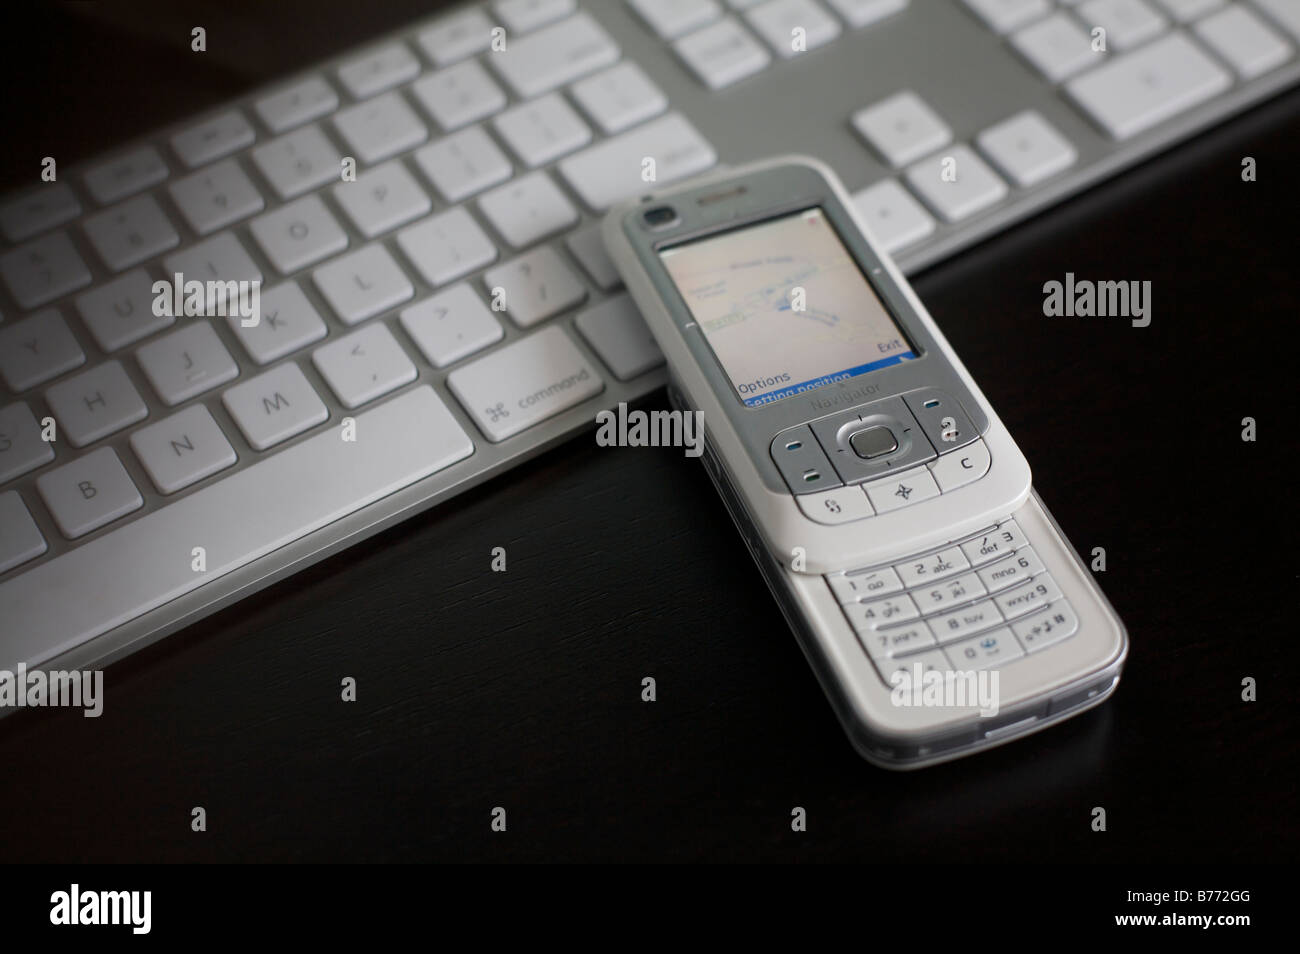 Nokia 6110 Navigator with keyboard in the background - Stock Image